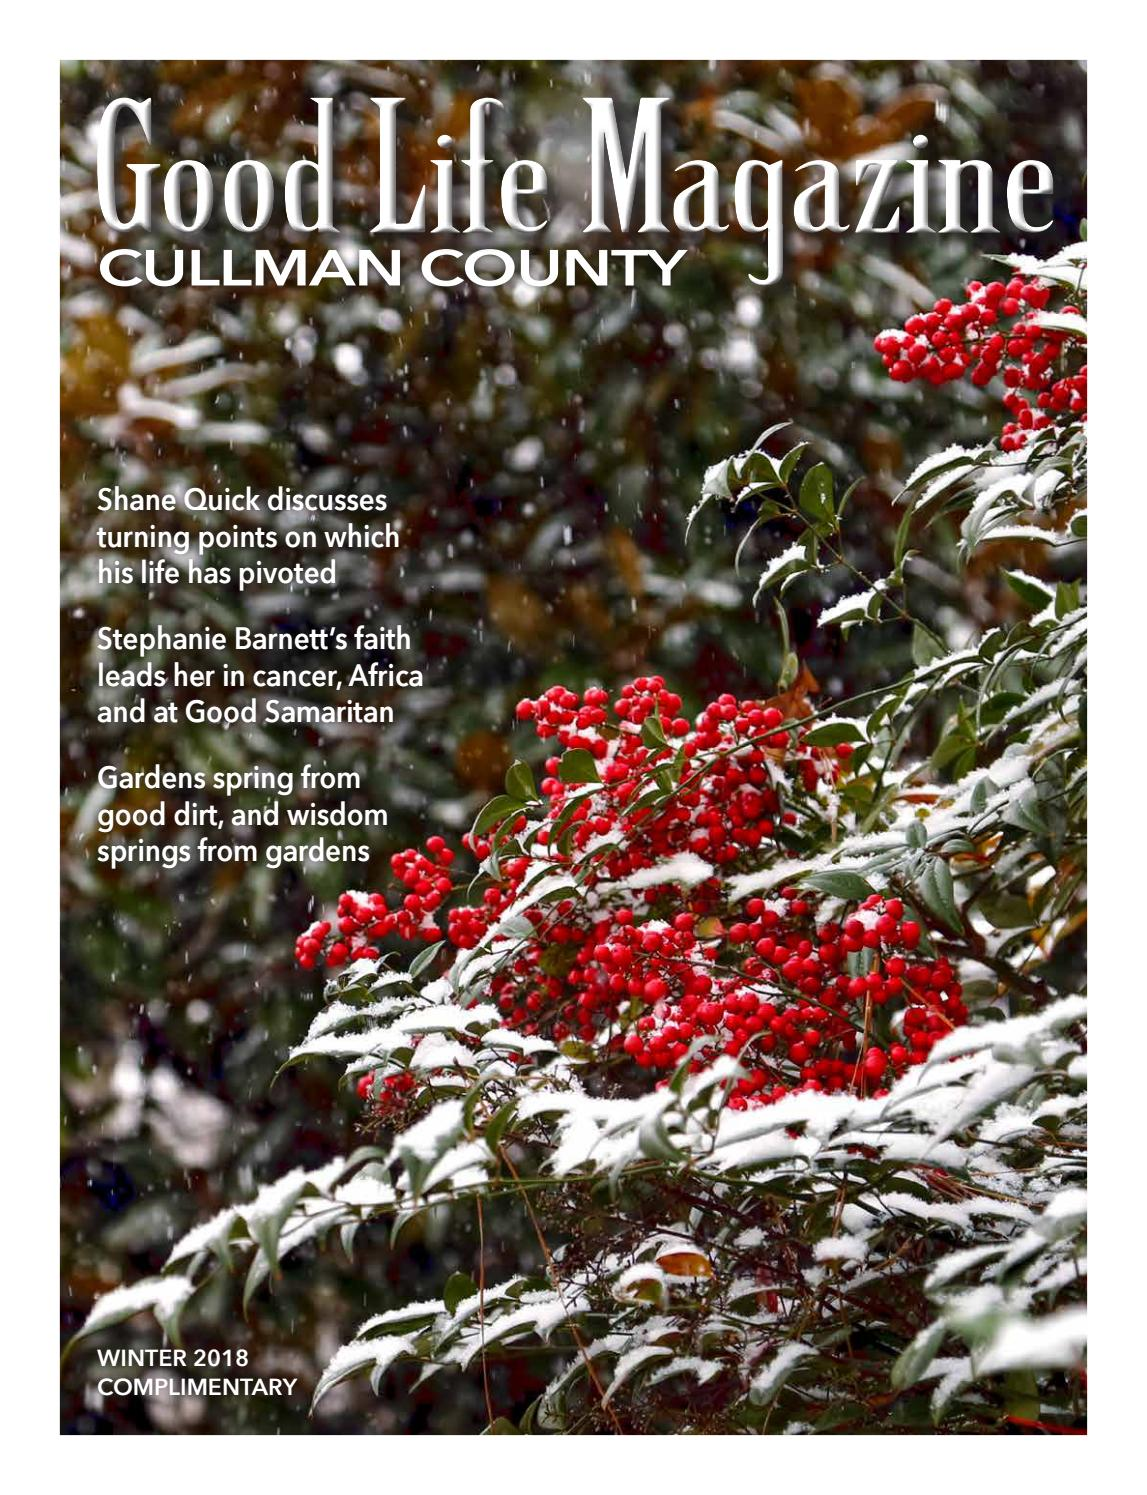 Cullman Good Life Magazine Winter 2018 By The Good Life Magazine Issuu